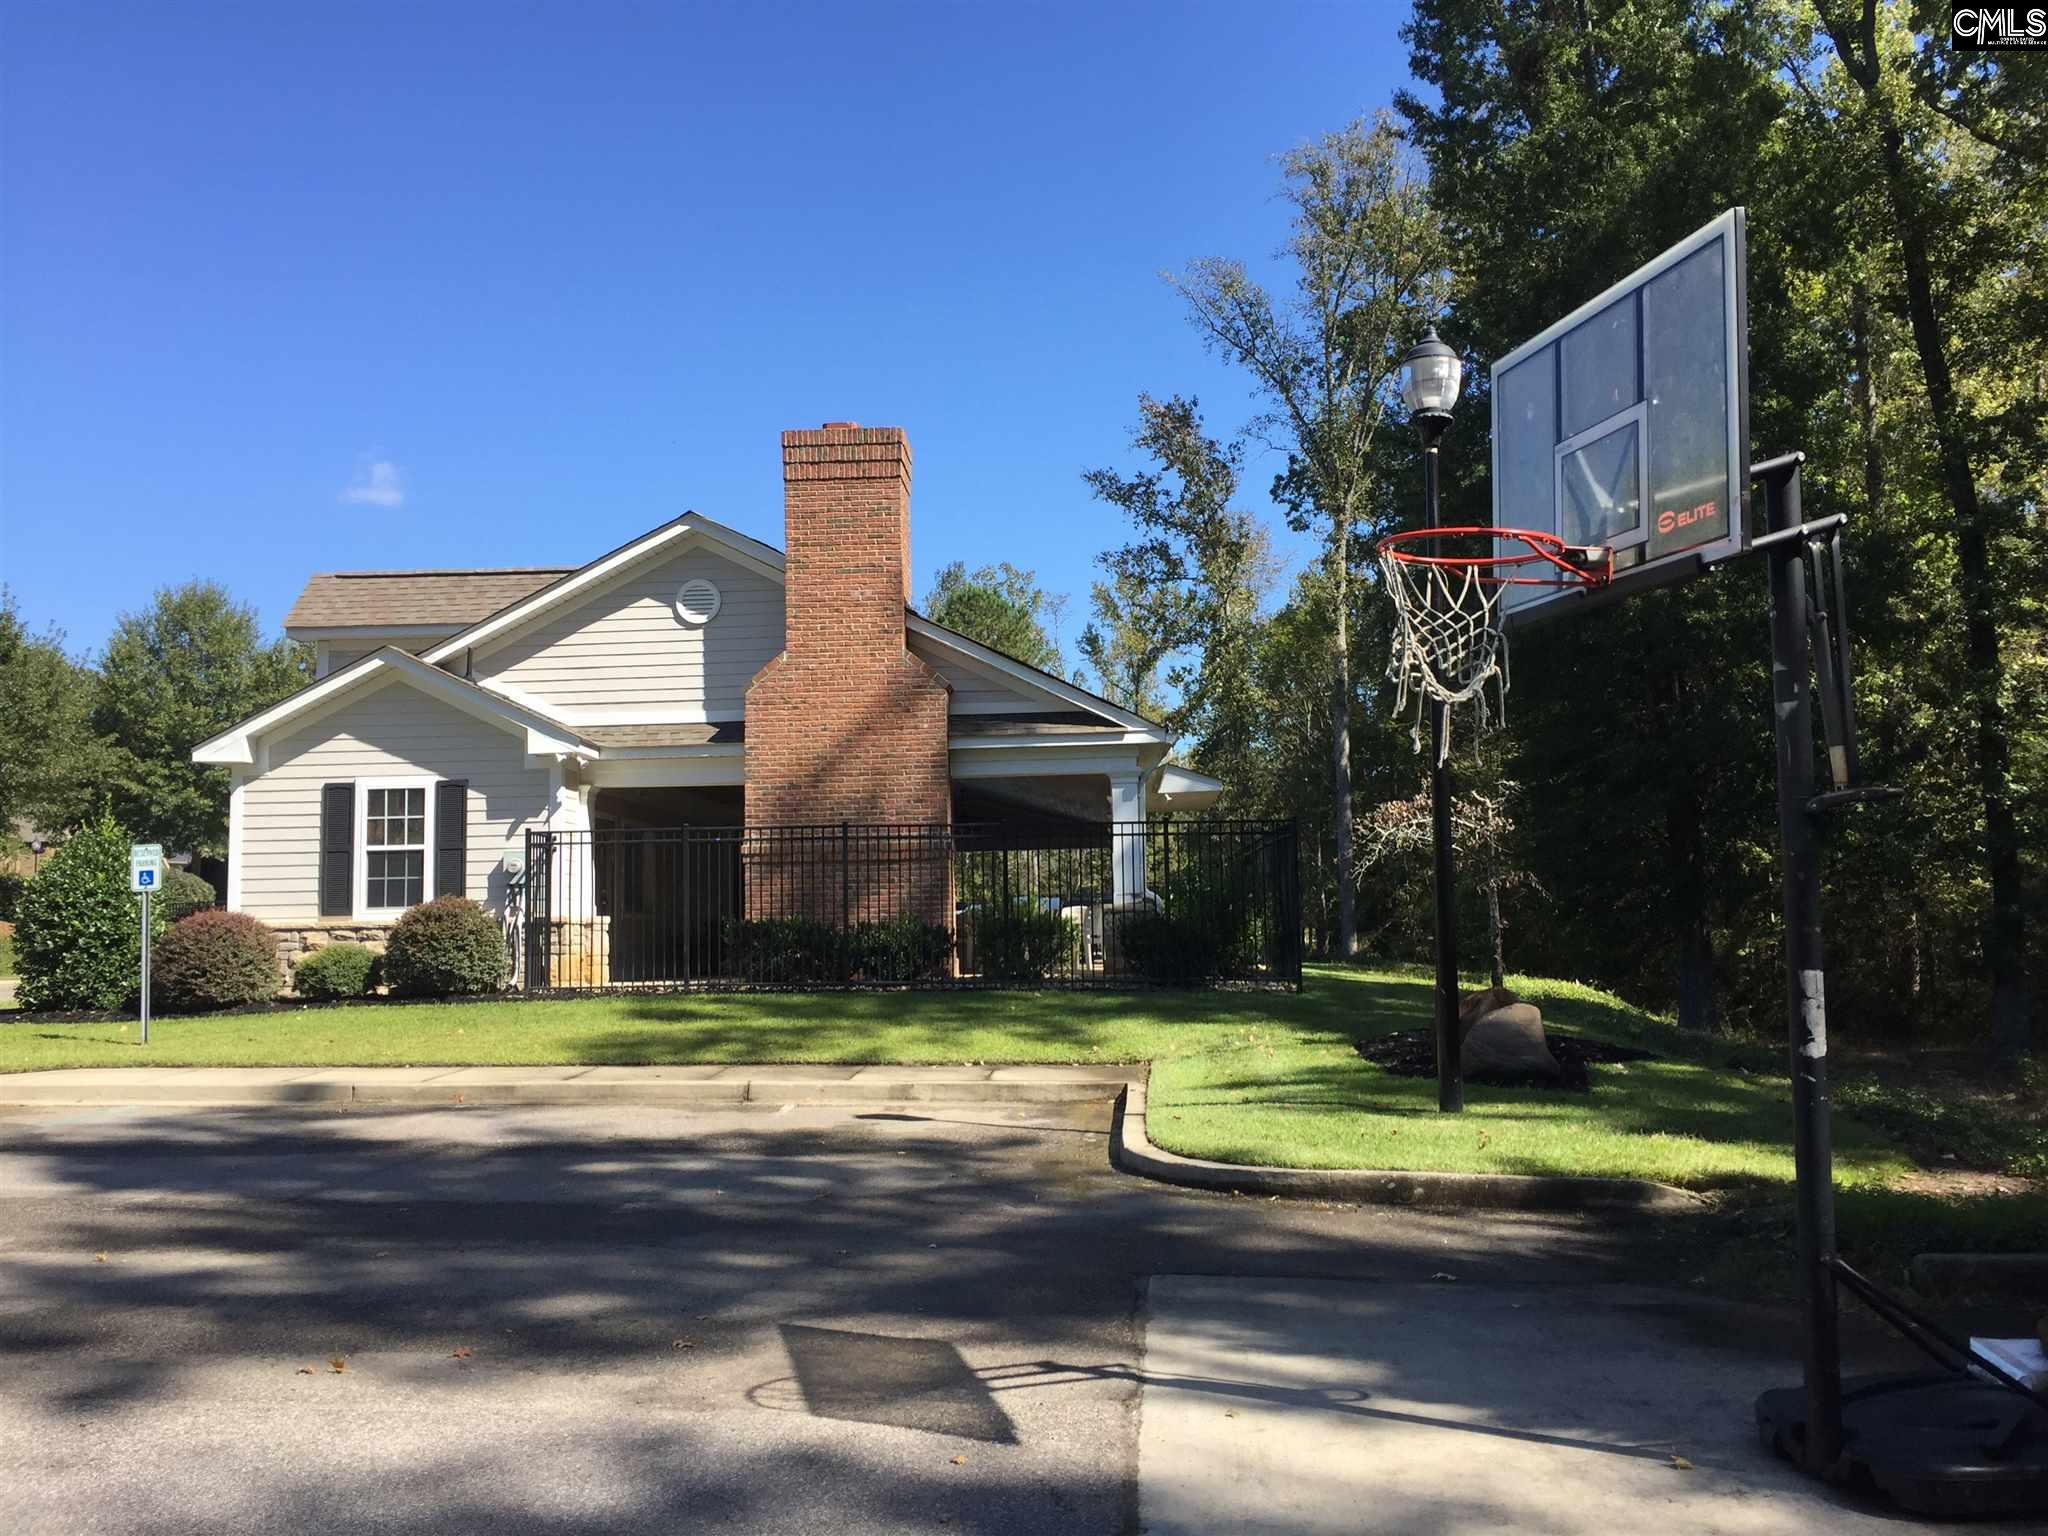 620 Clover View Chapin, SC 29036